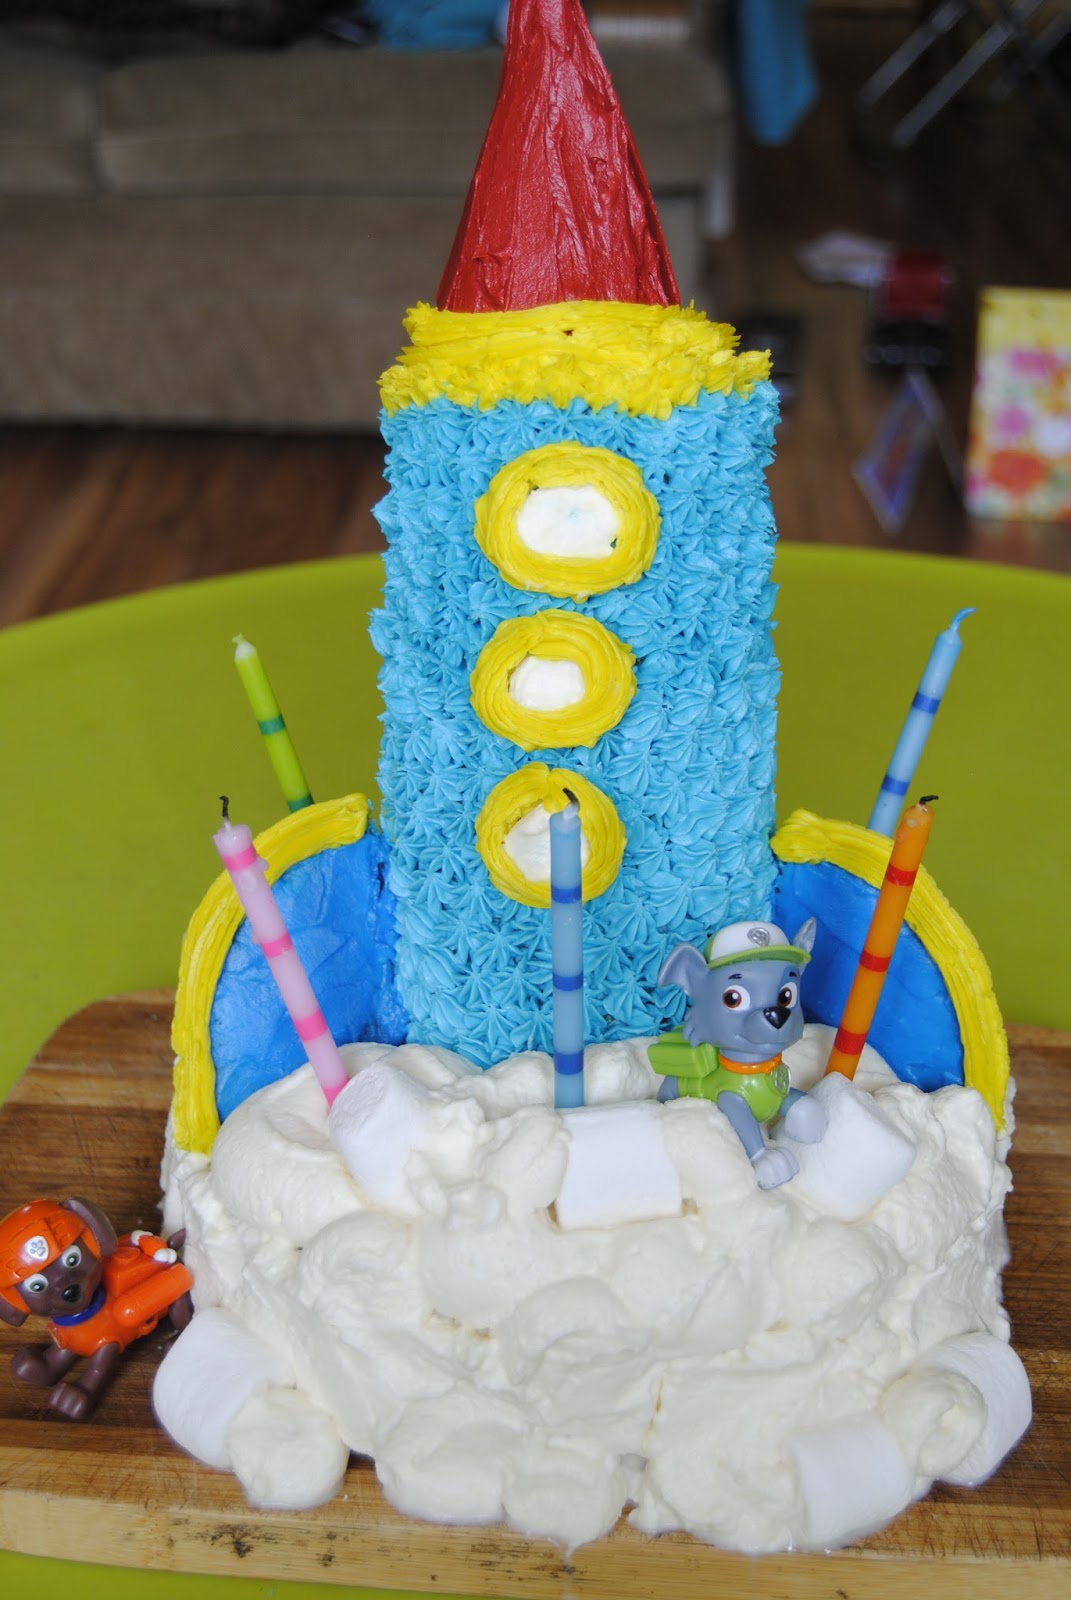 I Loved Making This Cake For My Little Superboy Turned 5 And Just Like ALL OTHER HUMANS Of Age Under Saying He Adores Paw Patrol Would Be